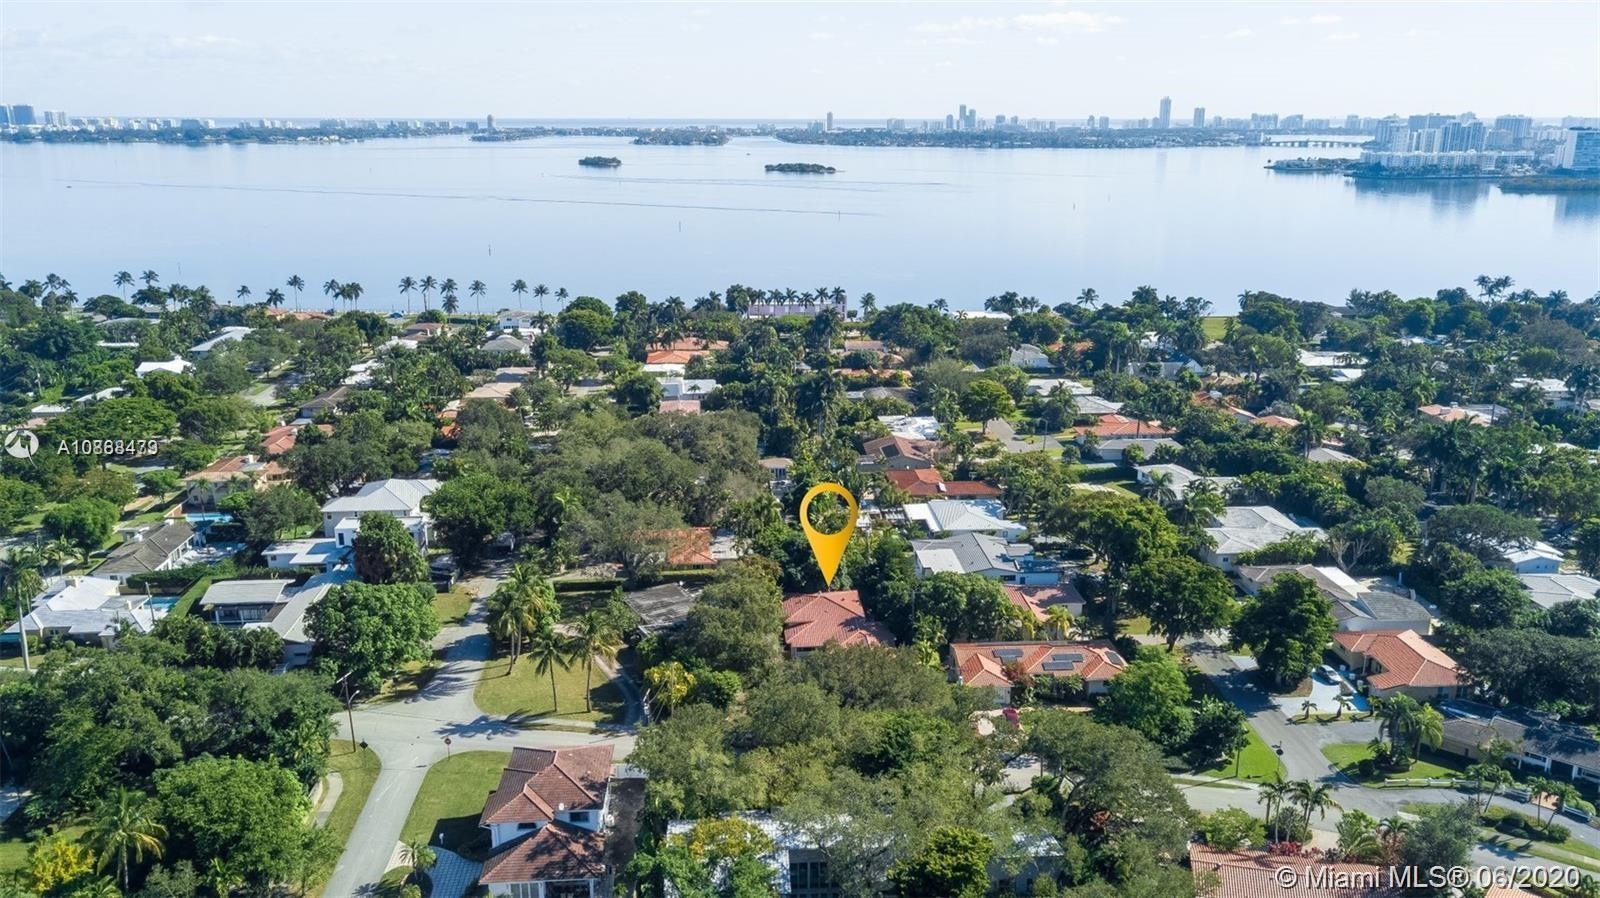 9351 NE 12th Ave, Miami Shores, Florida 33138, 5 Bedrooms Bedrooms, ,4 BathroomsBathrooms,Residential,For Sale,9351 NE 12th Ave,A10868479